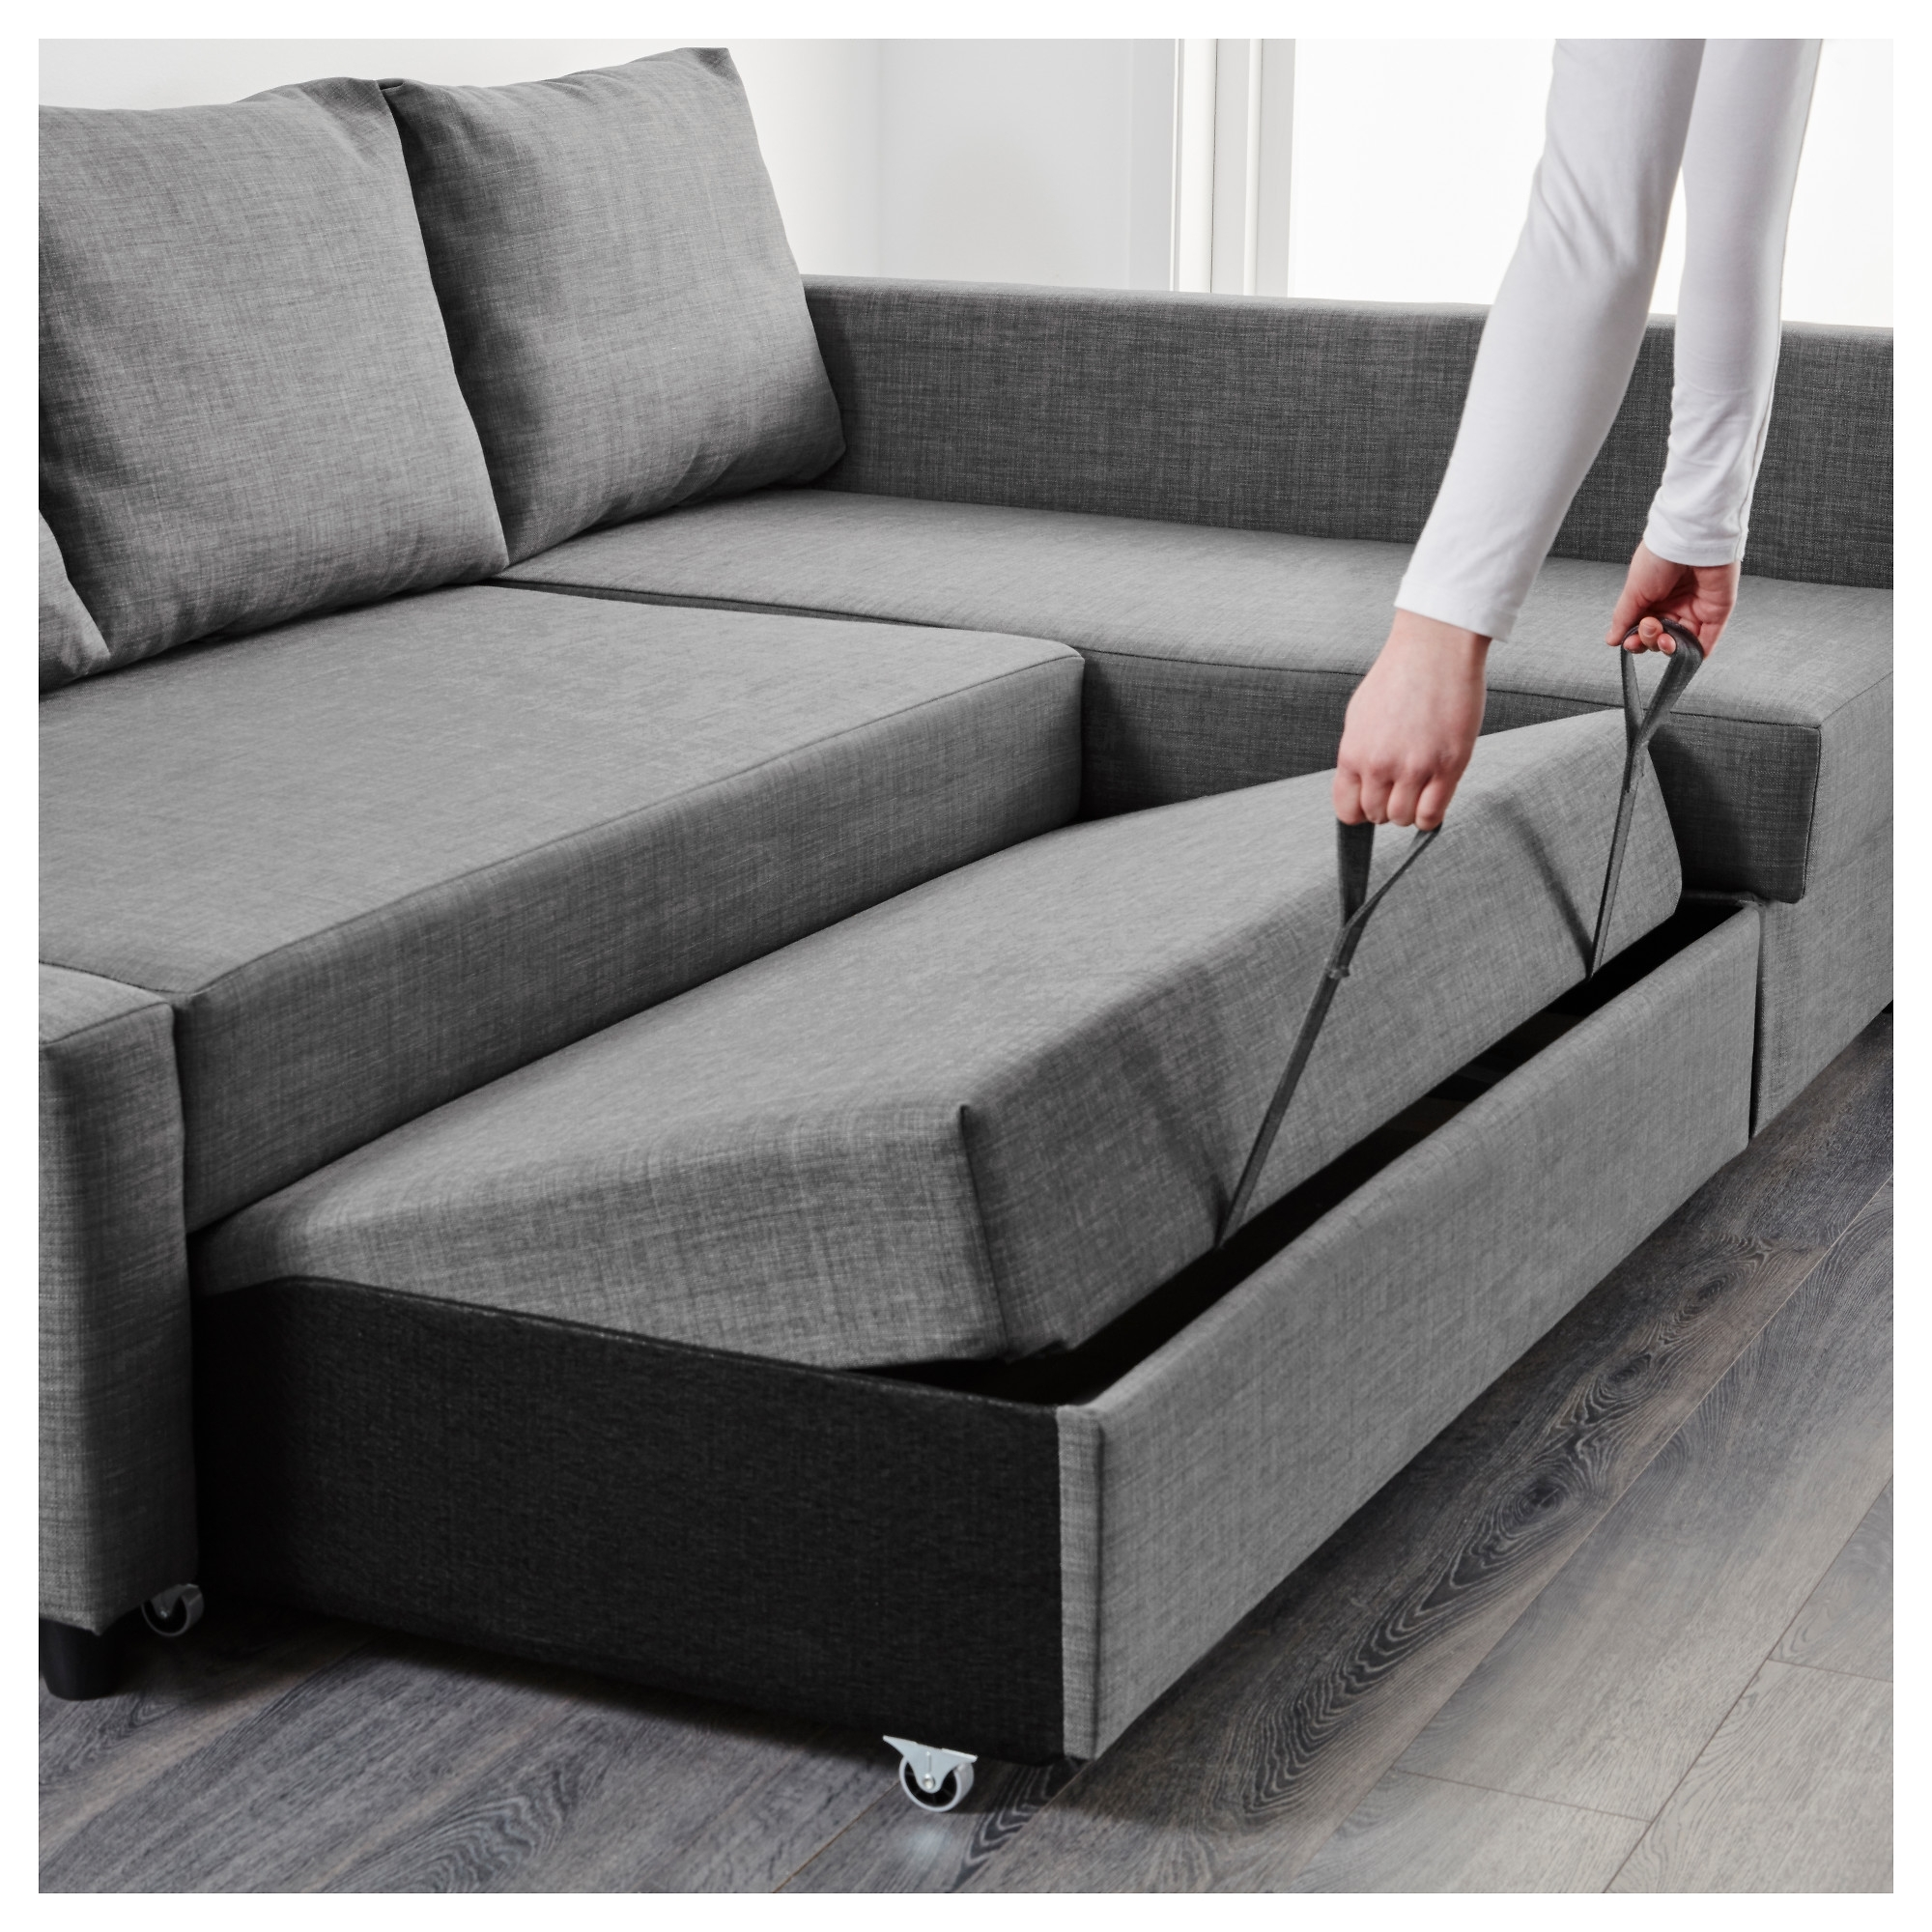 Ikea Chaise Sofas Pertaining To Famous Friheten Corner Sofa Bed With Storage Skiftebo Dark Grey – Ikea (View 4 of 15)